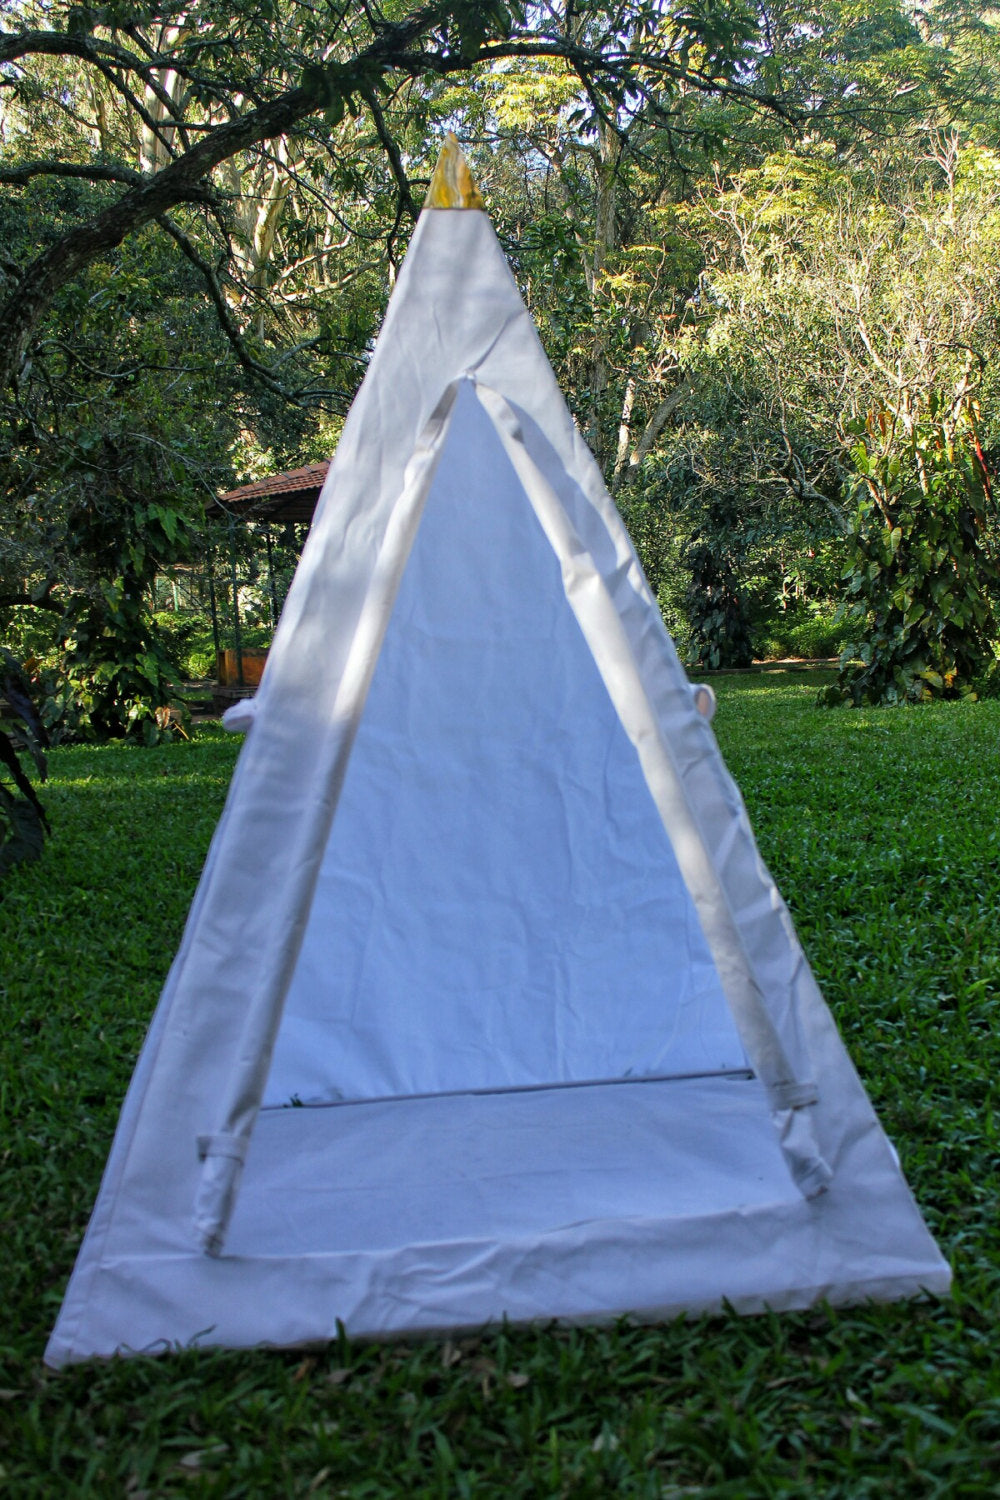 Deluxe Nubian Copper Framed Meditation Pyramid 4 Feet Base Lite duty Tent Unit